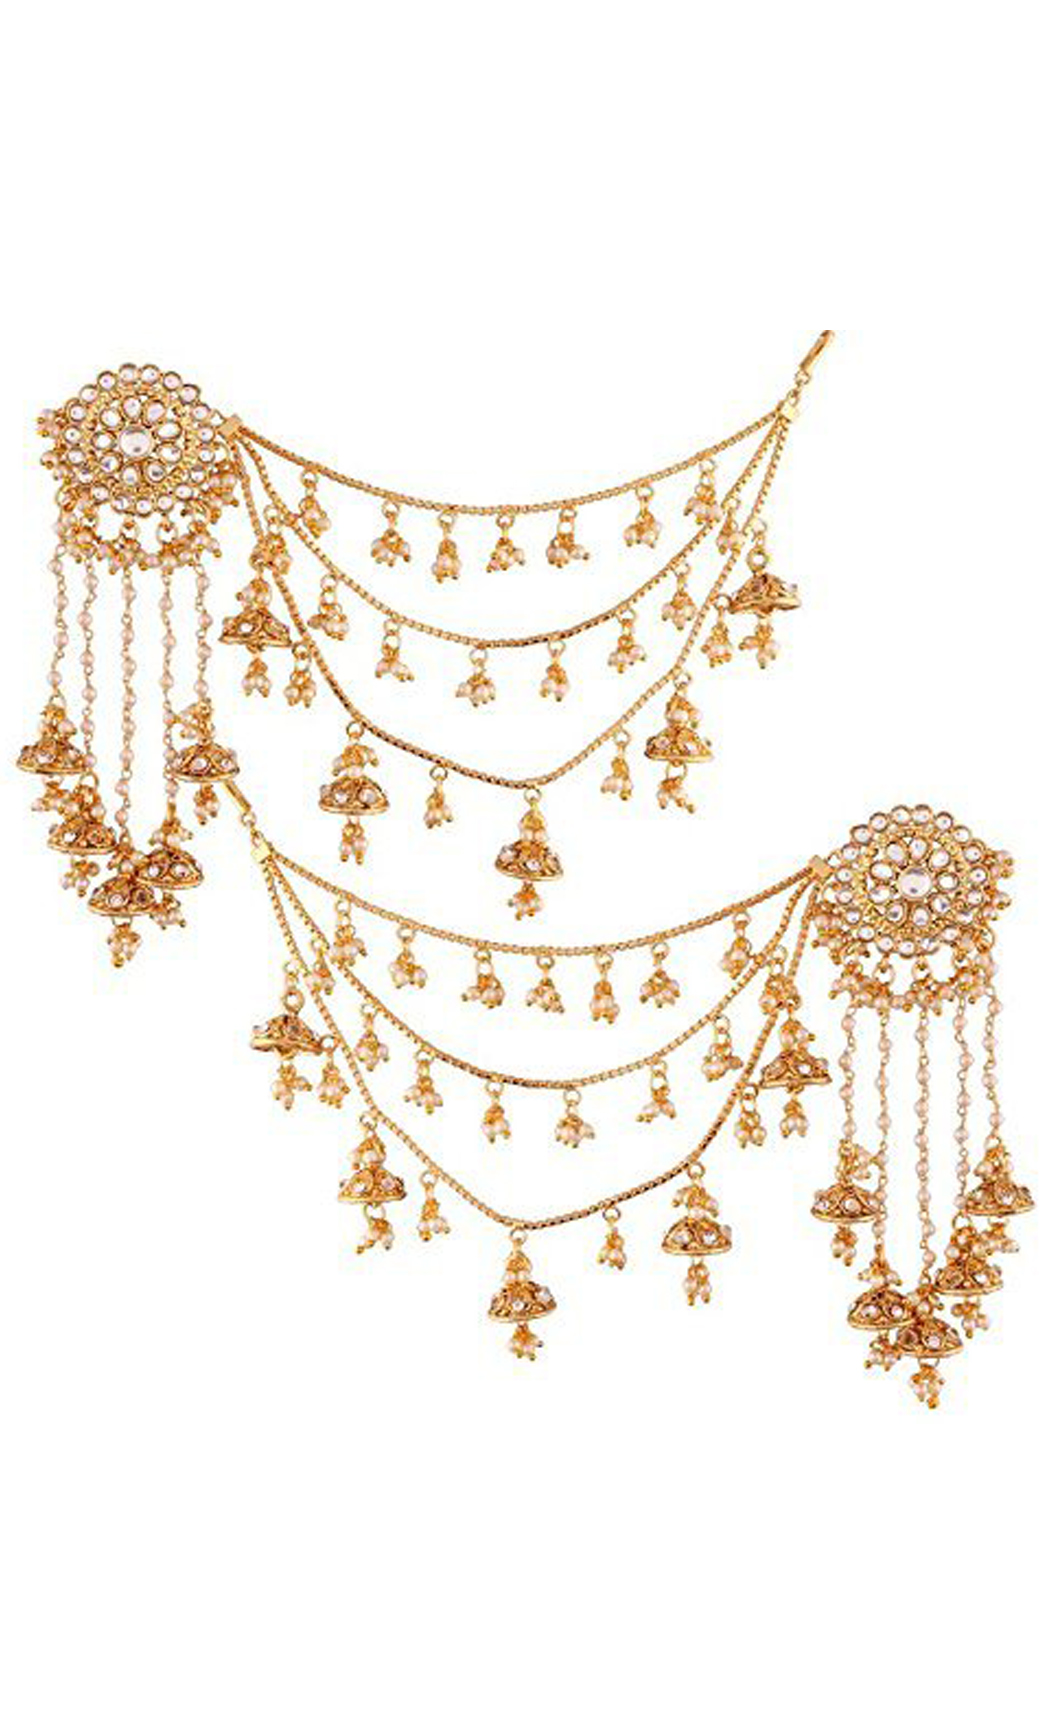 Kundan Earrings with Small Jhumkas and Earring Chains | Wedding Earrings | Buy Online